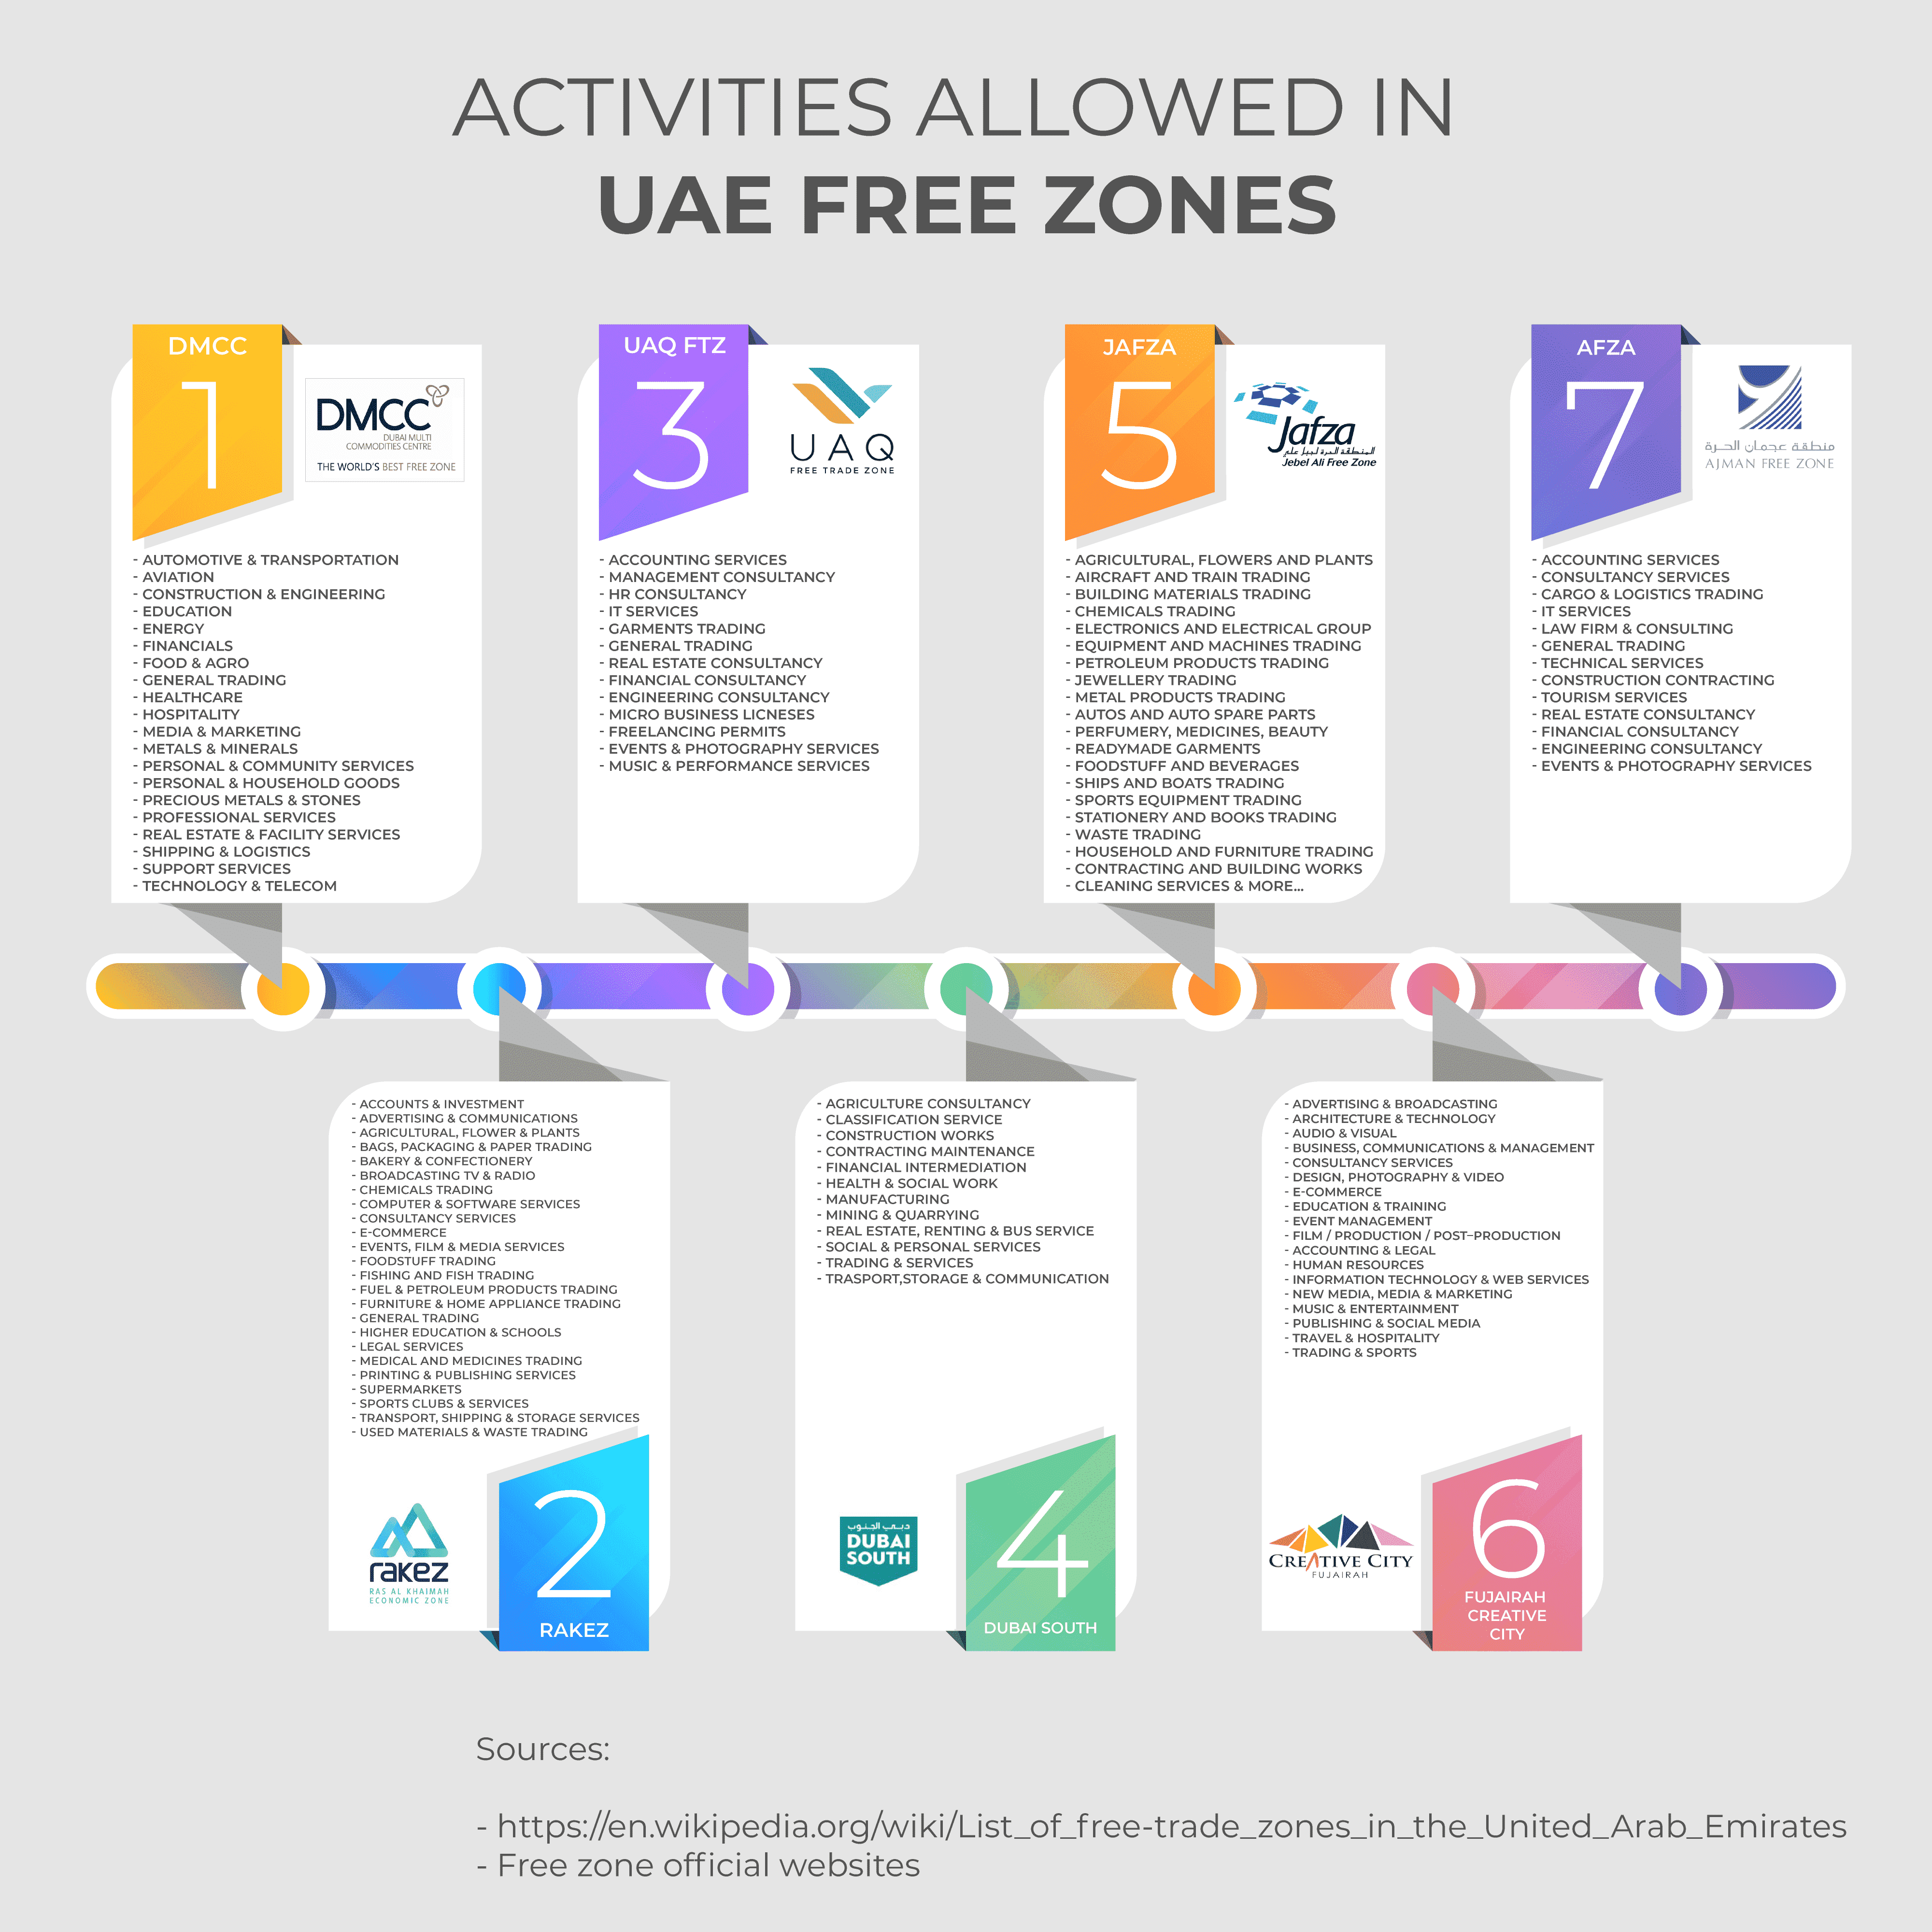 What Activities are Allowed in Free Zones of UAE - Infographic